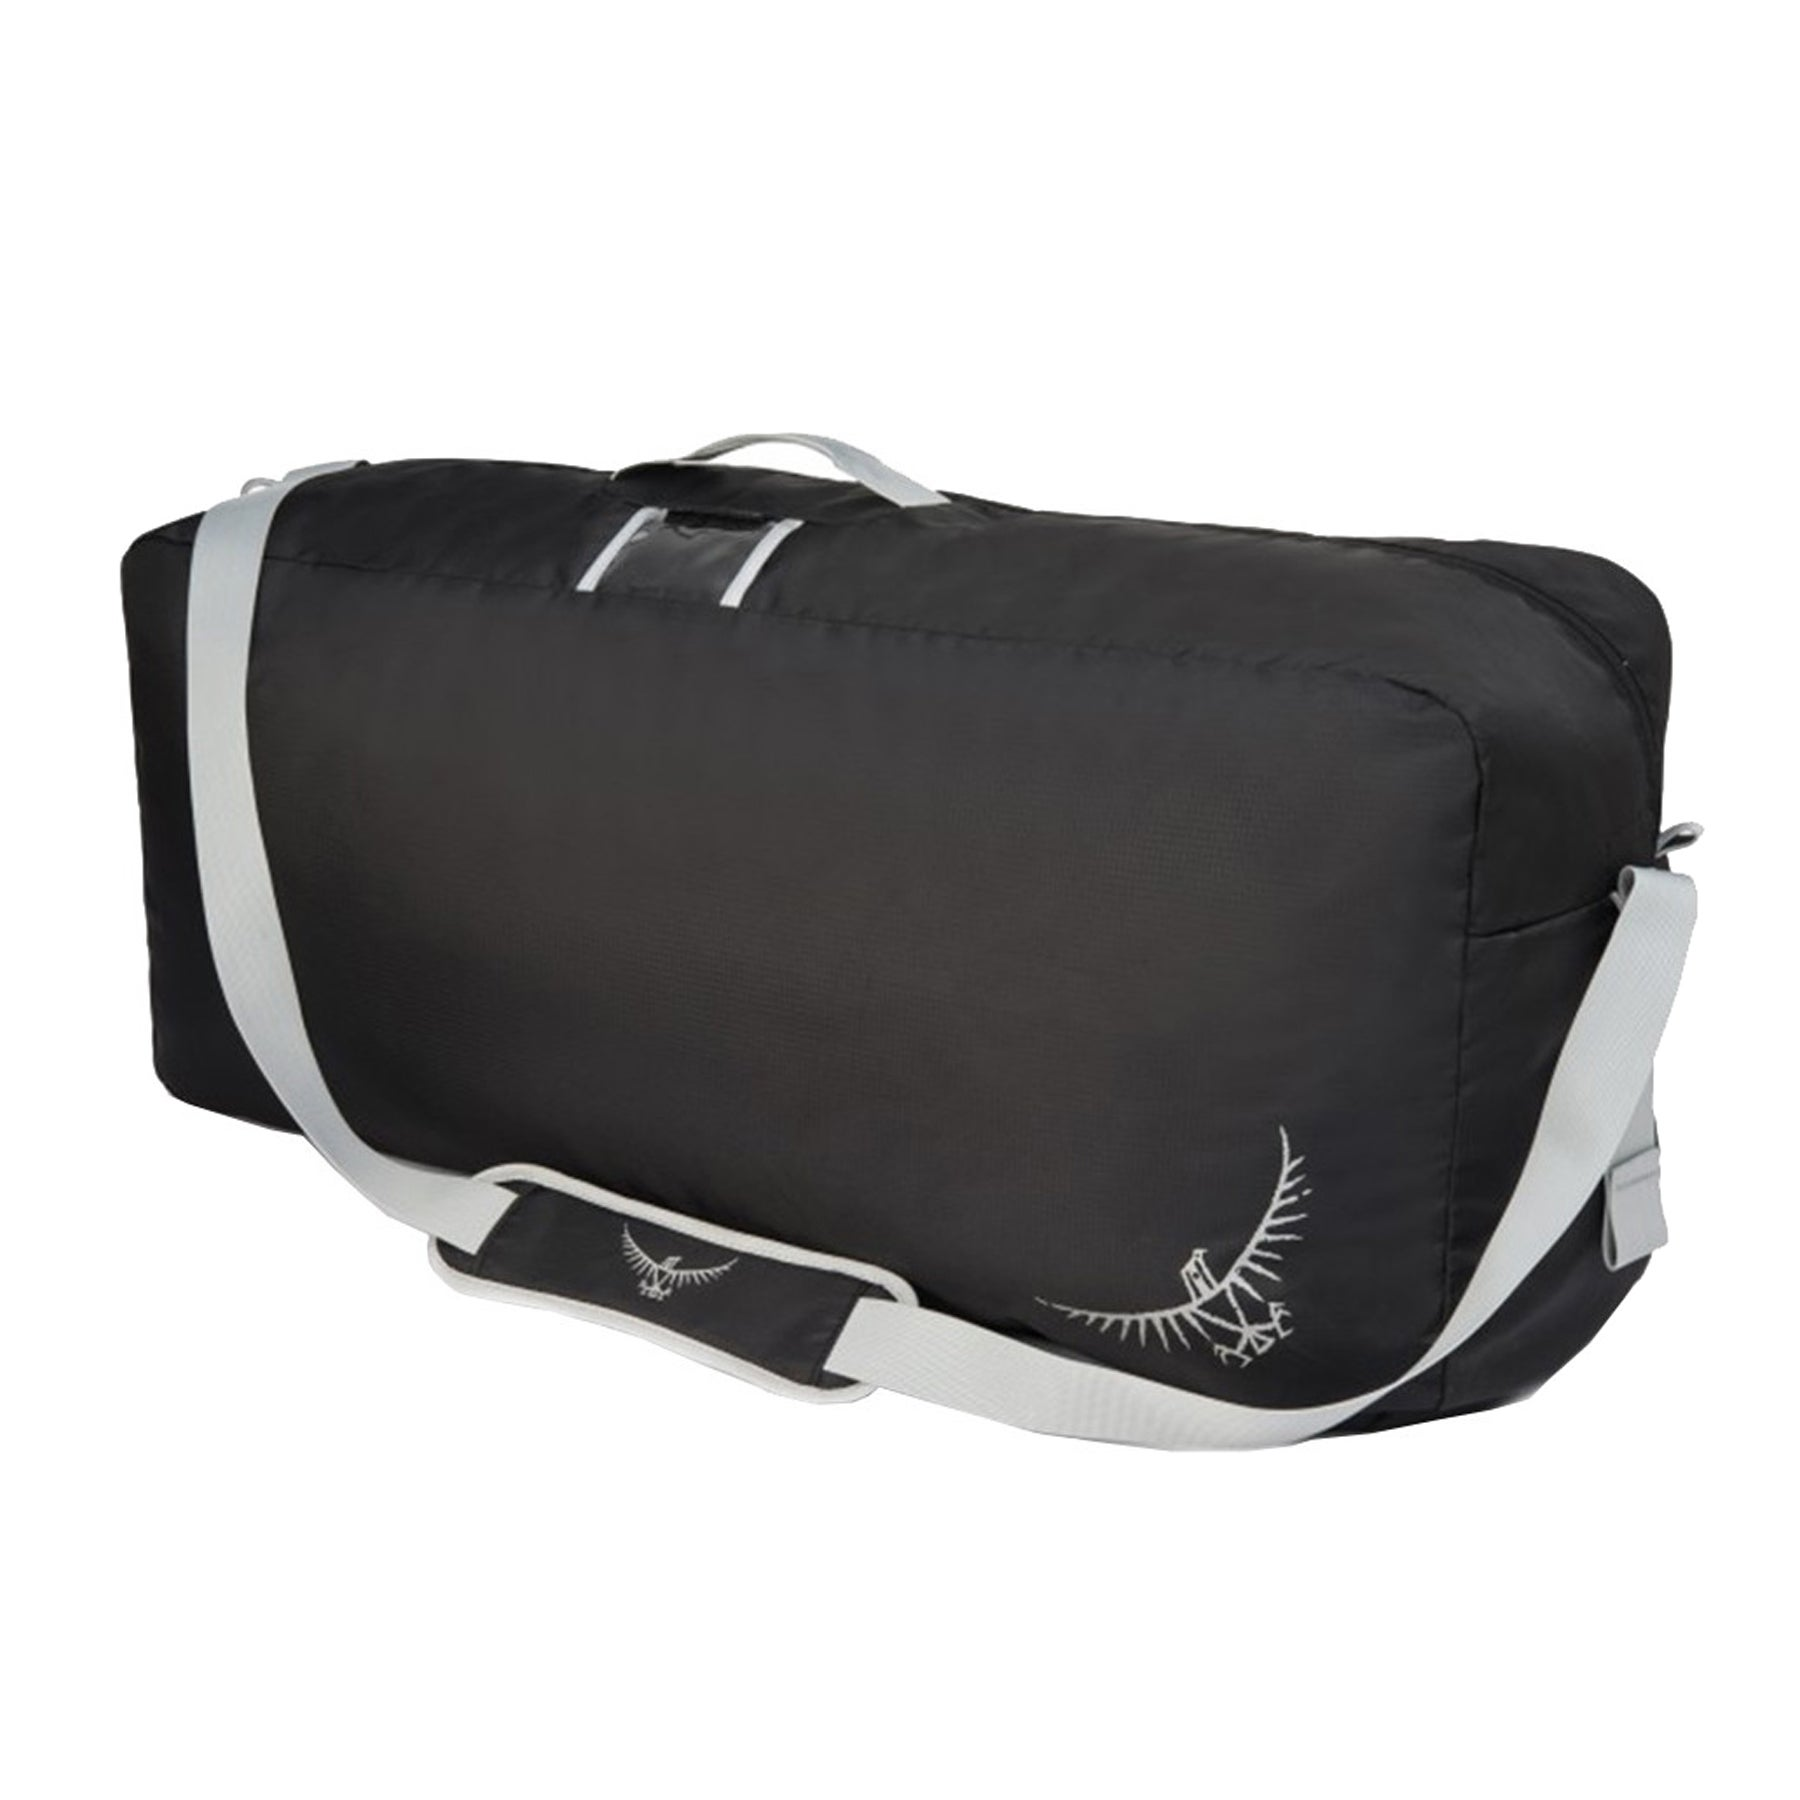 Porte-Bébés Osprey Poco Carrying Case - Black